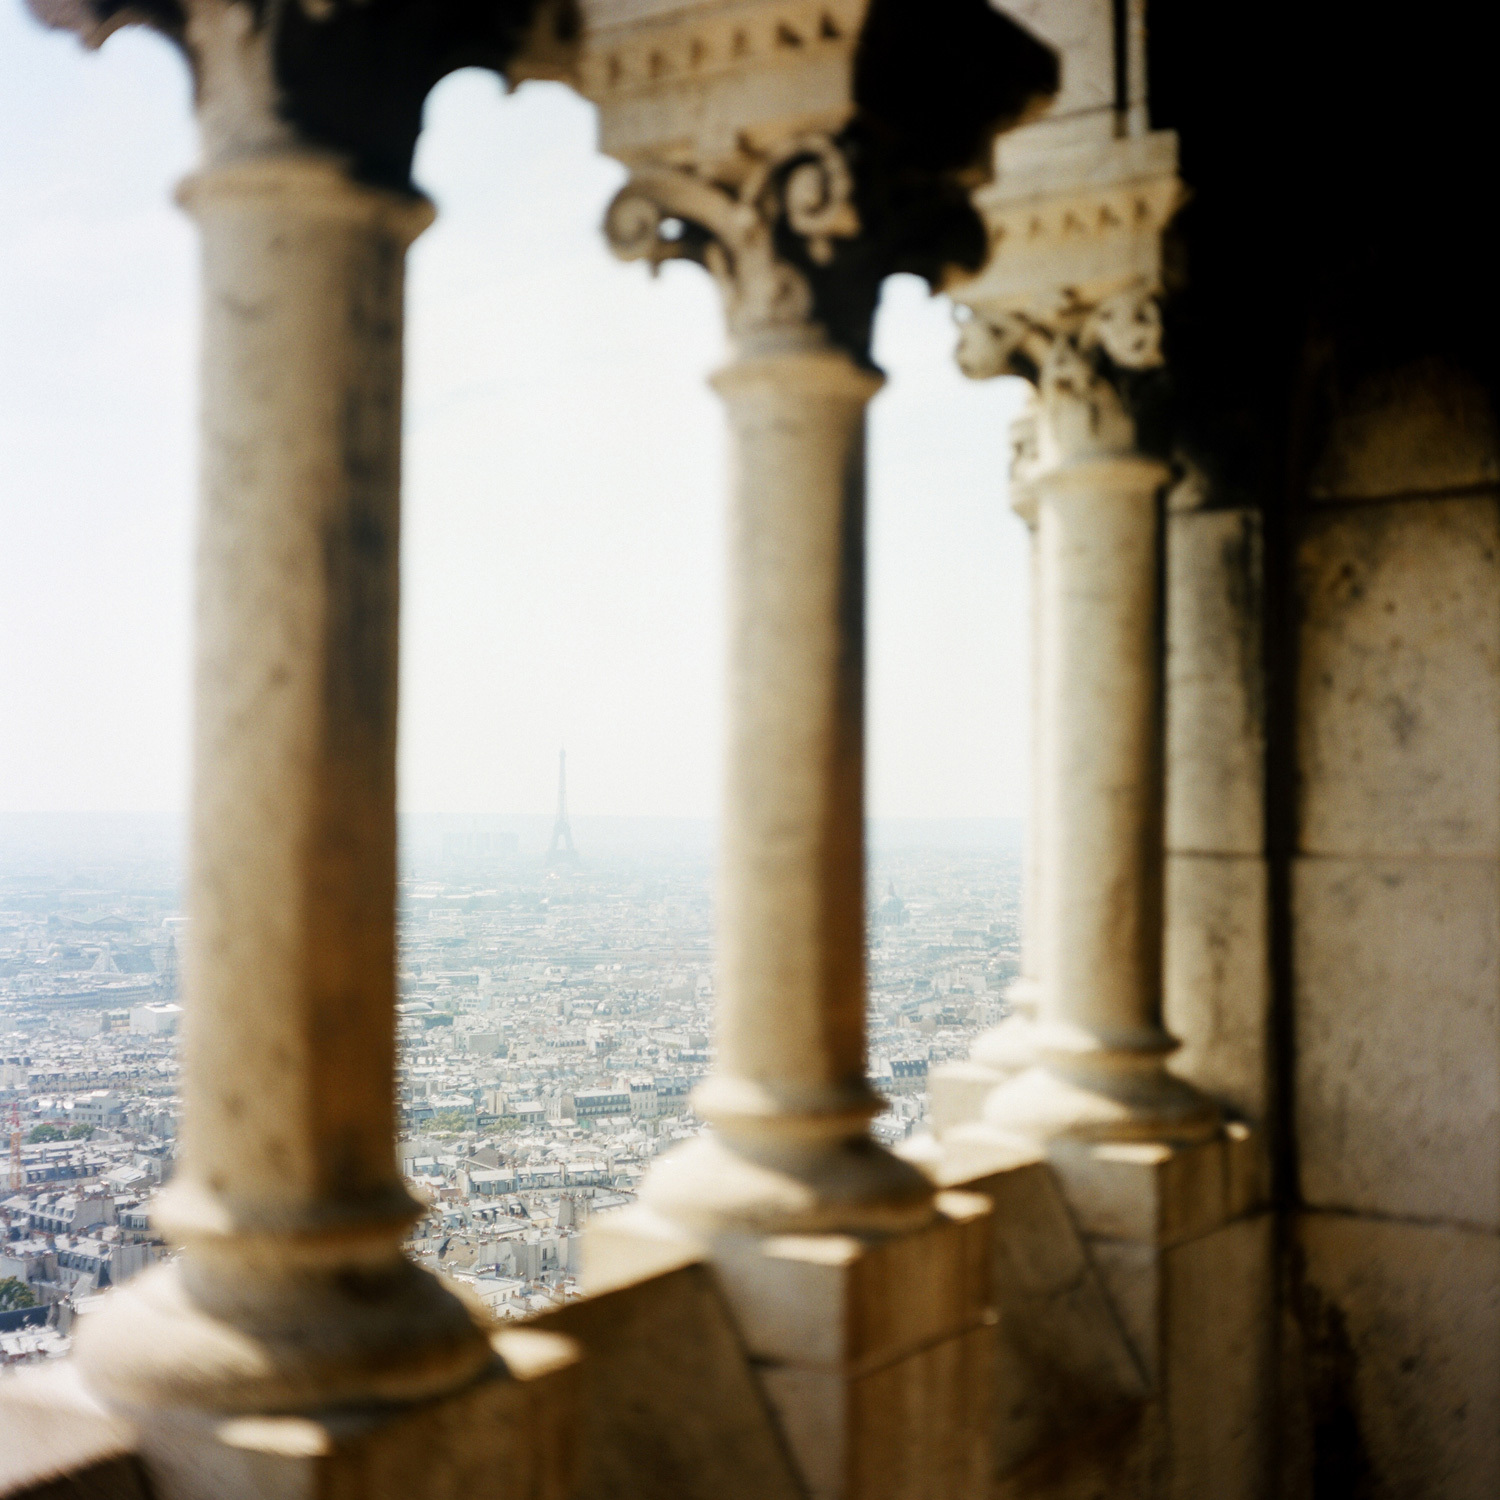 051-katie-mitchell-film-travel-photographer-paris-france-italy-california.jpg